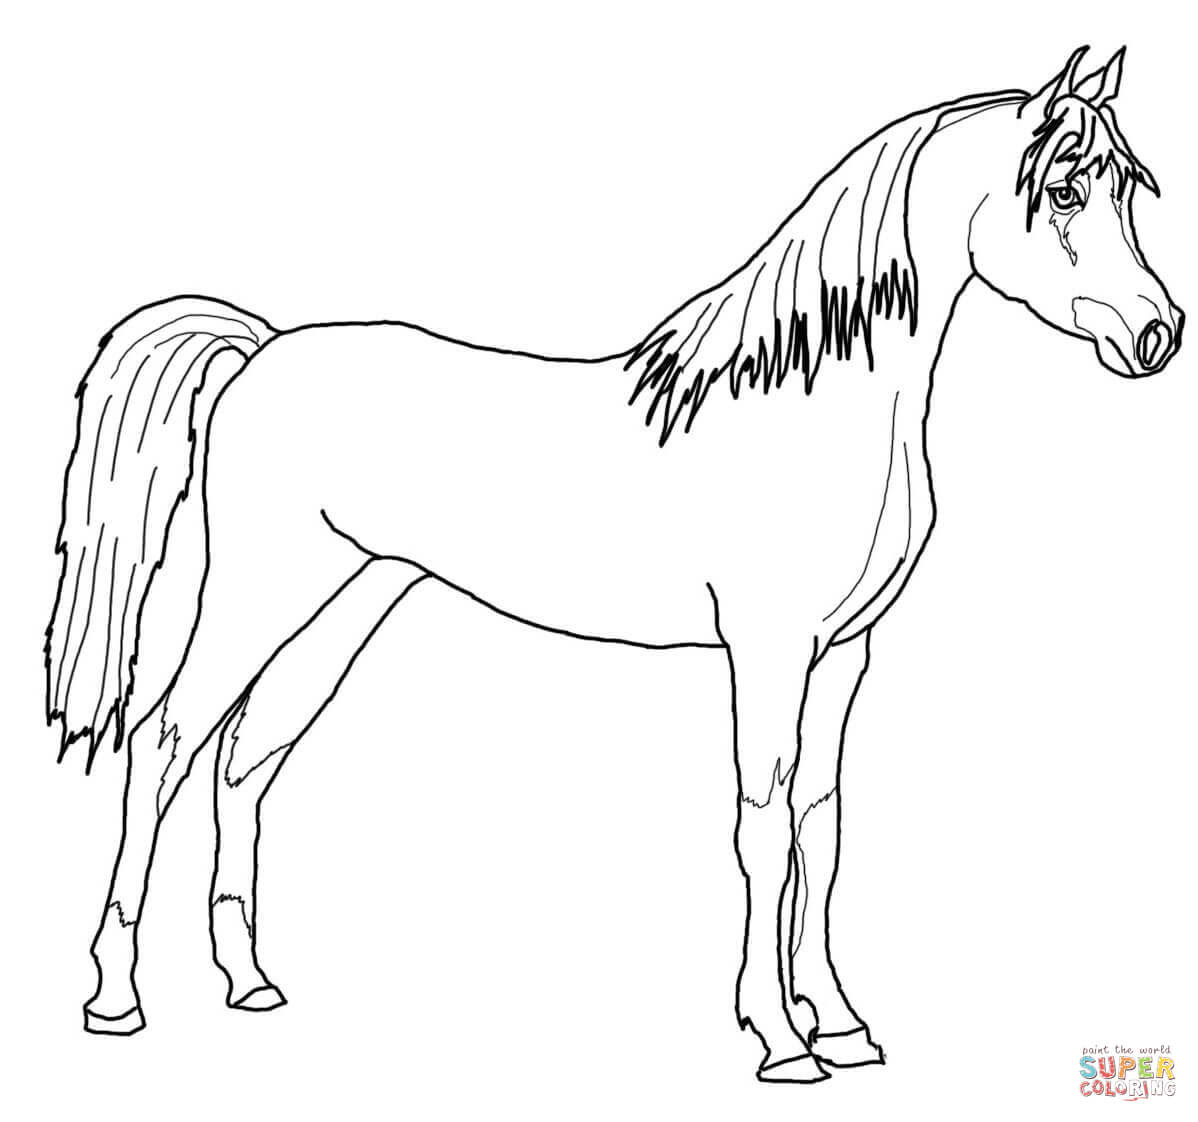 Clydesdale Horse Coloring Pages at GetColorings.com | Free ...